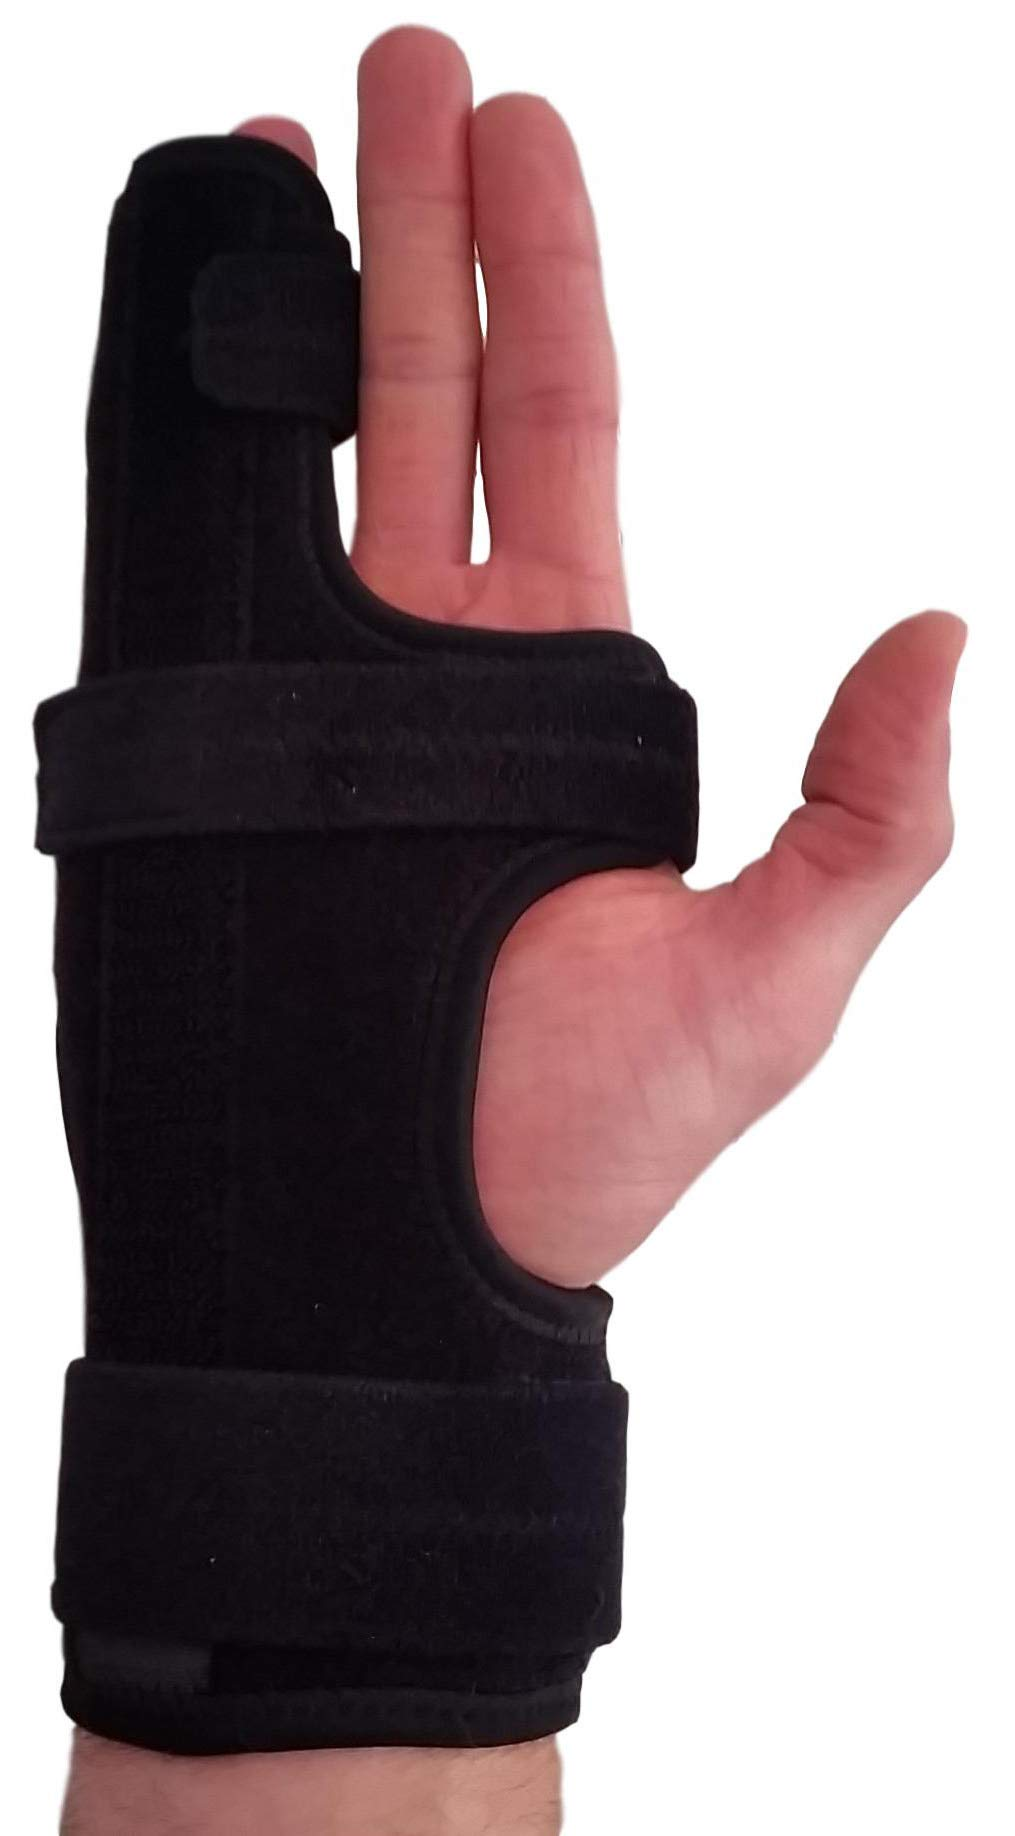 Metacarpal Finger Splint Hand Brace - Hand Brace & Metacarpal Support for Broken Fingers, Wrist & Hand Injuries or Little Finger Fracture (Right - Small/Med) by ARMSTRONG AMERIKA